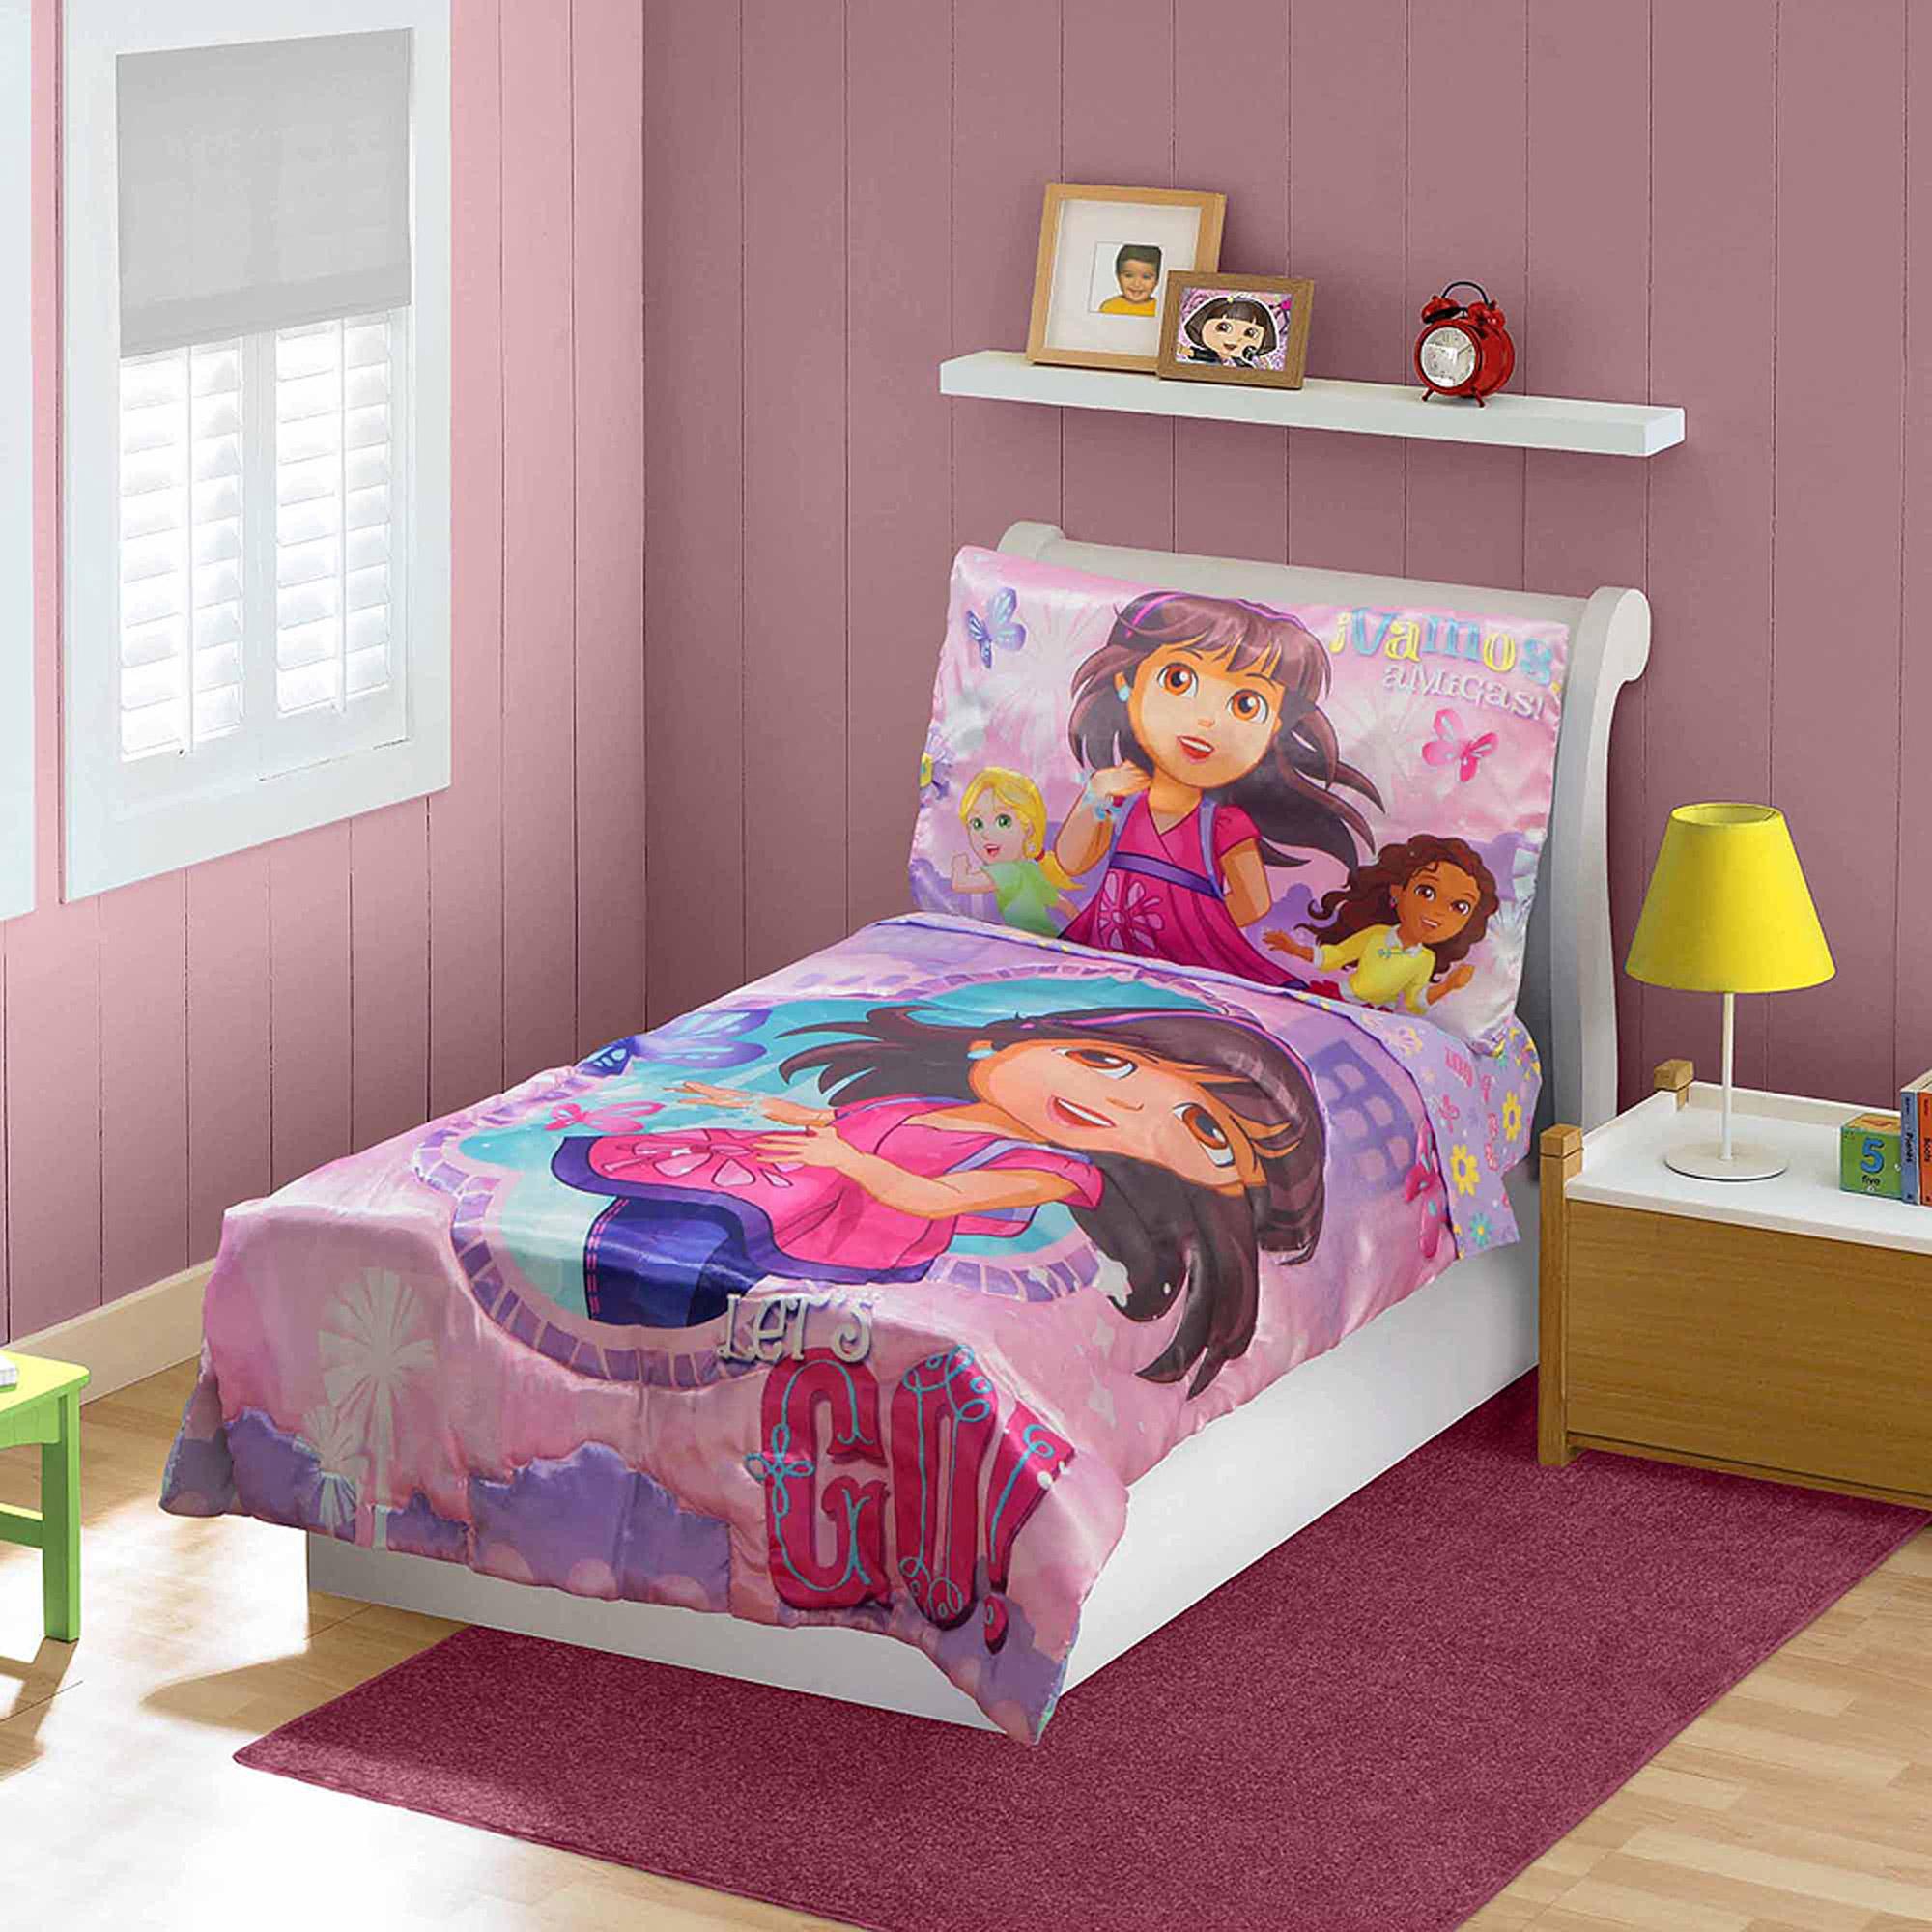 Dora & Friends 3 Piece Toddler Bedding Set with BONUS Matching Pillow Case